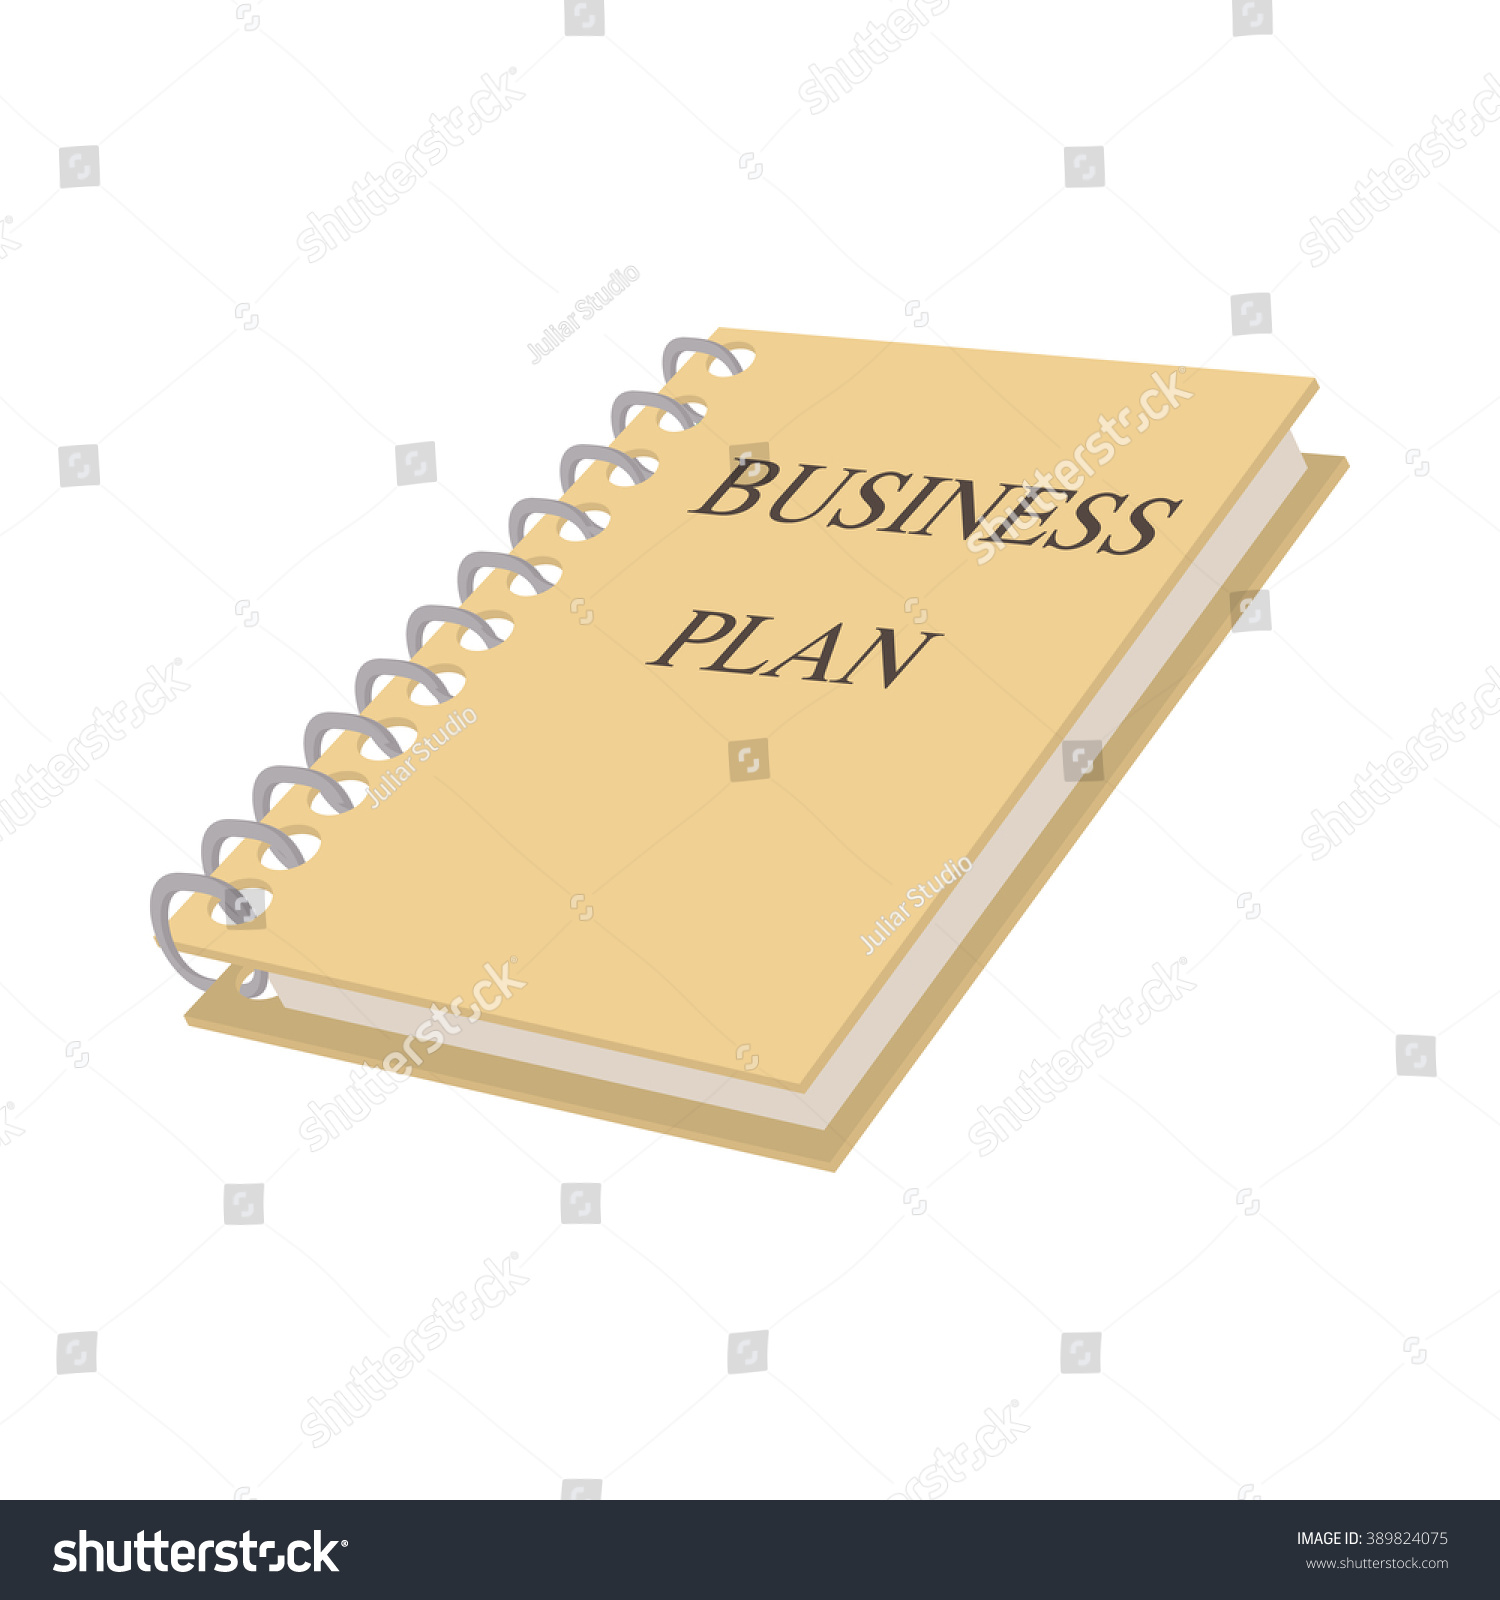 Web business plan